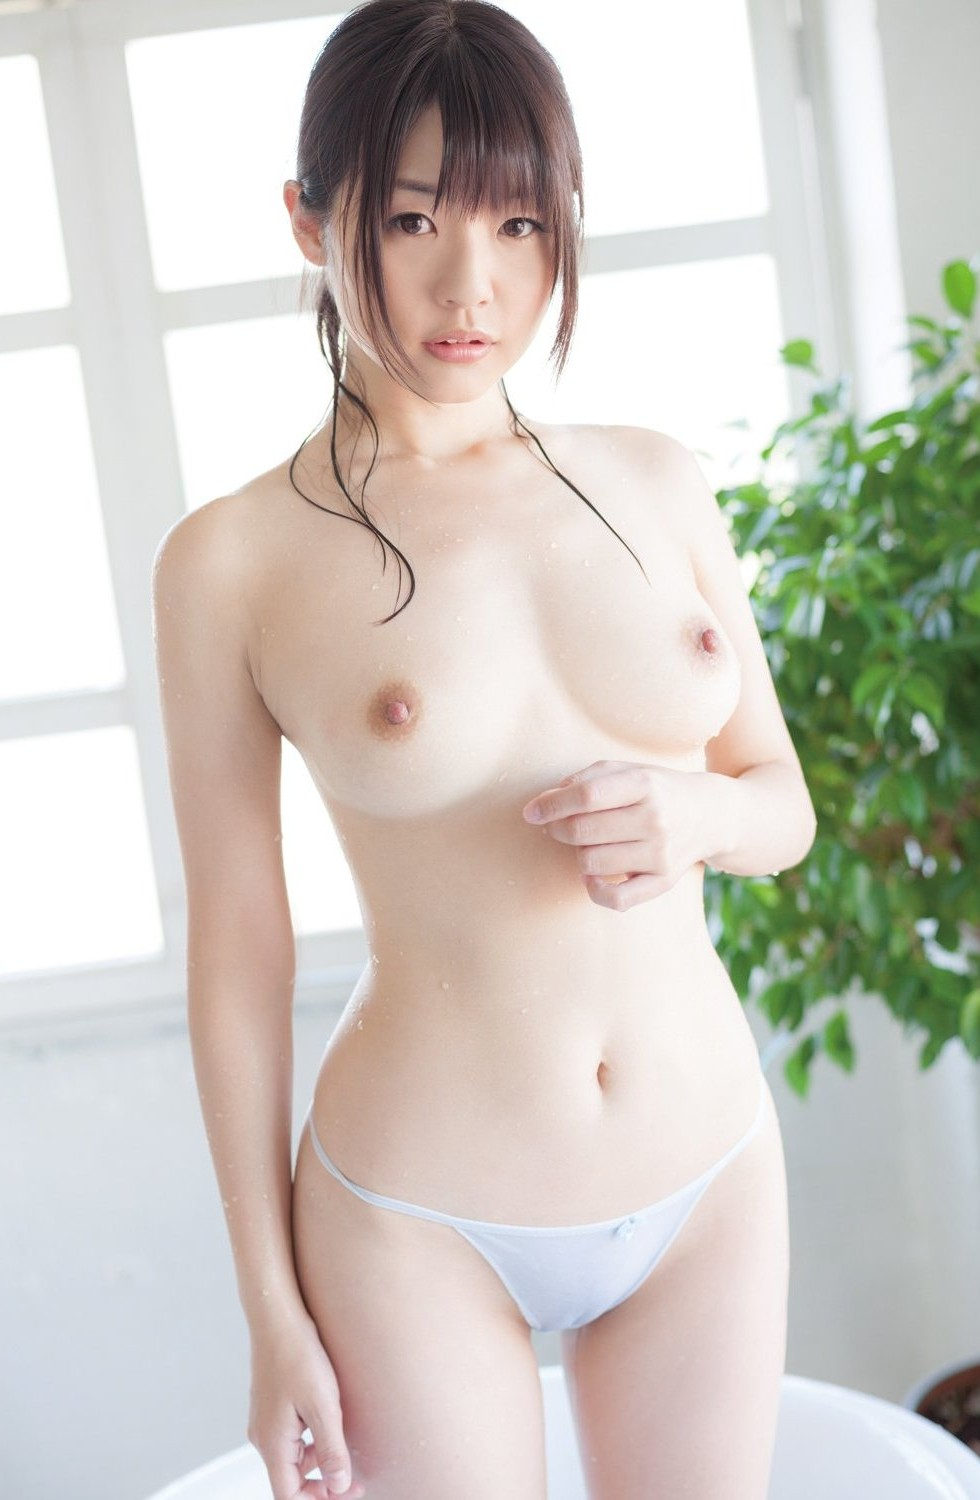 Kawaii nude girls — 9